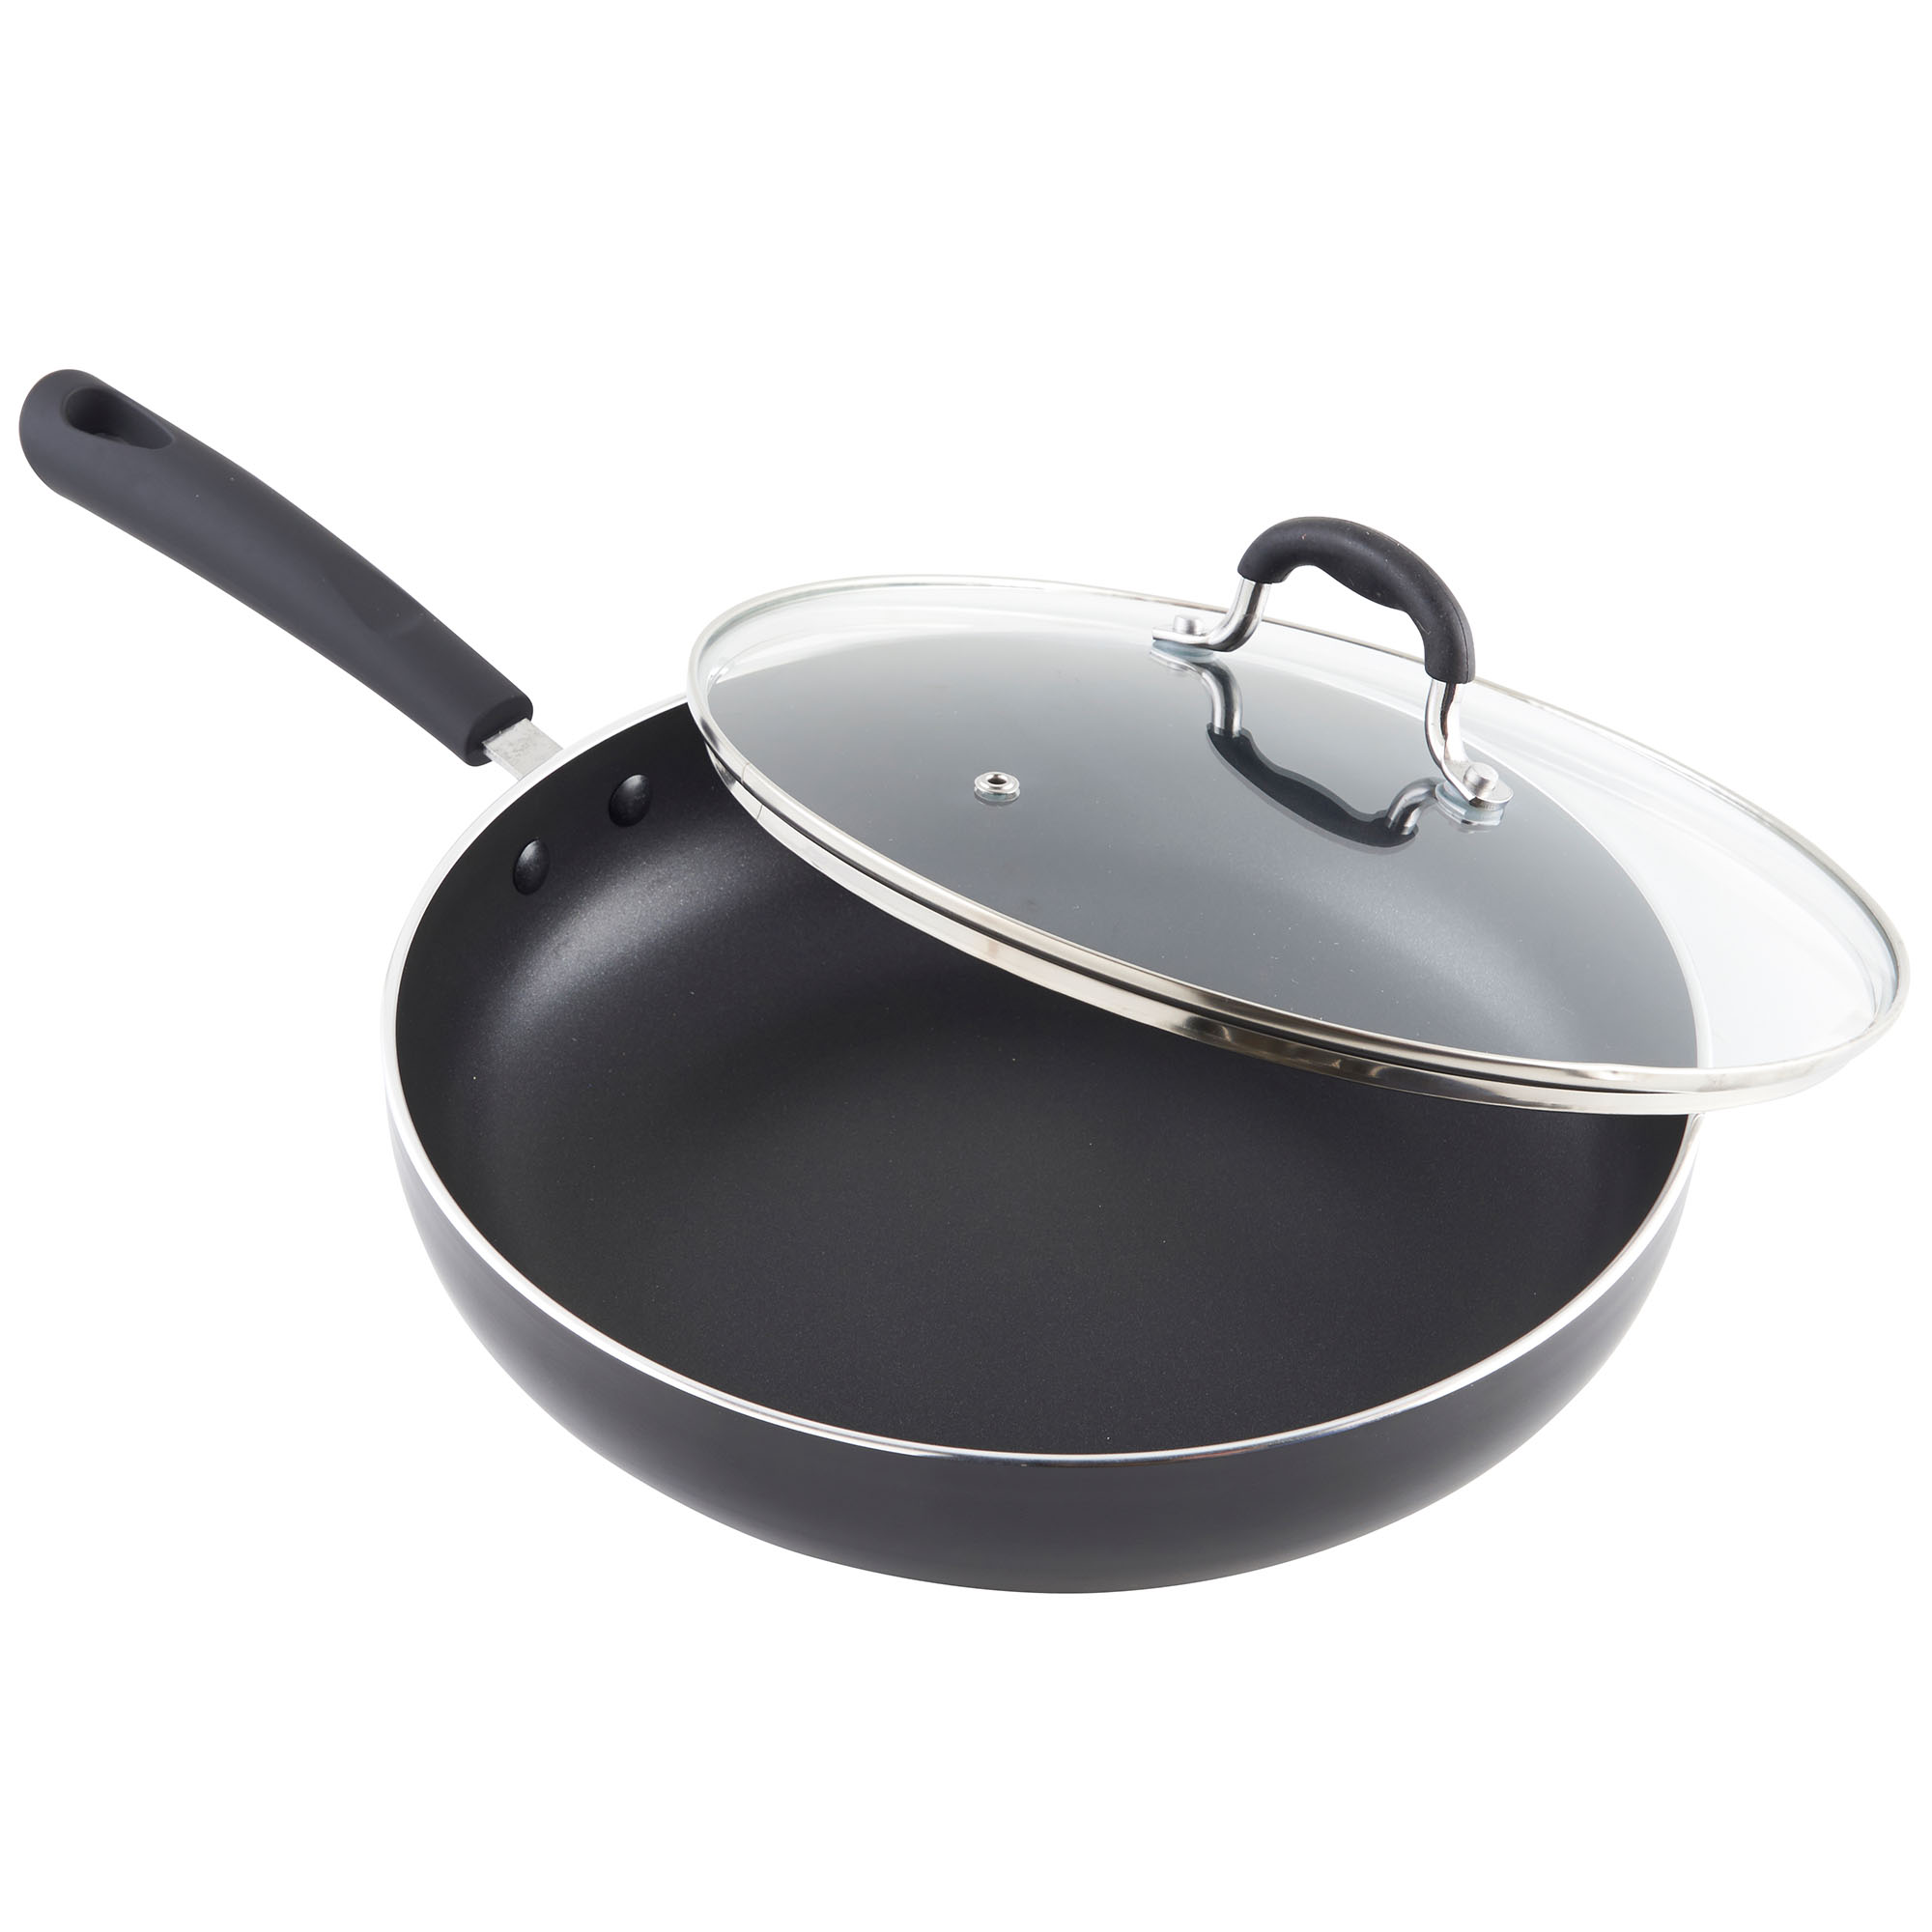 vonshef 28cm non stick aluminium induction frying saut pan glass lid 689850470739 ebay. Black Bedroom Furniture Sets. Home Design Ideas